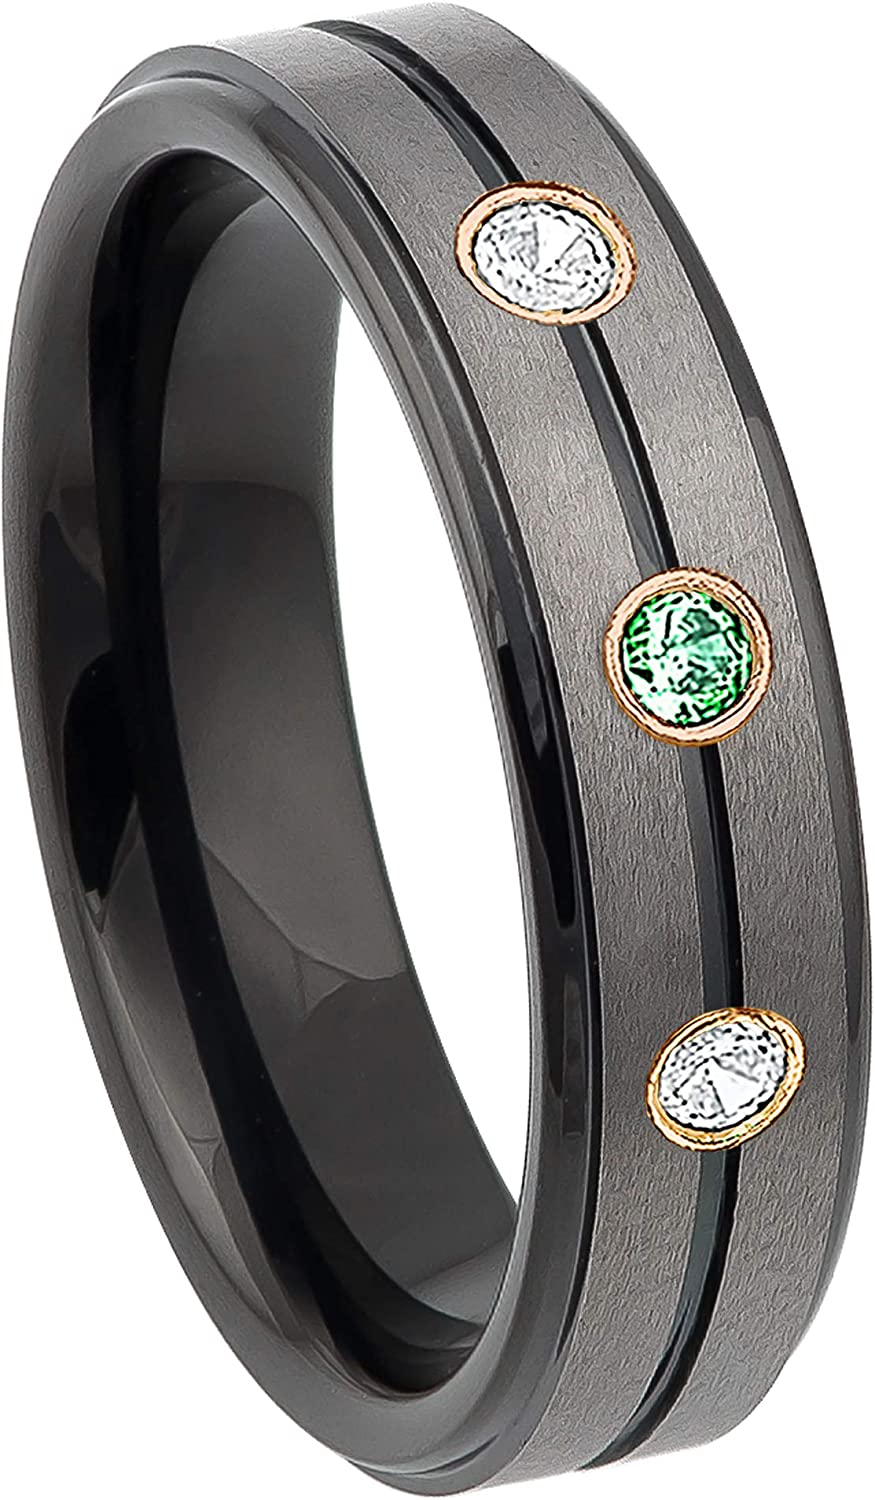 Ring Size 11.5 Security Jewelers Black Tungsten 6mm Grooved Band Size 11.5